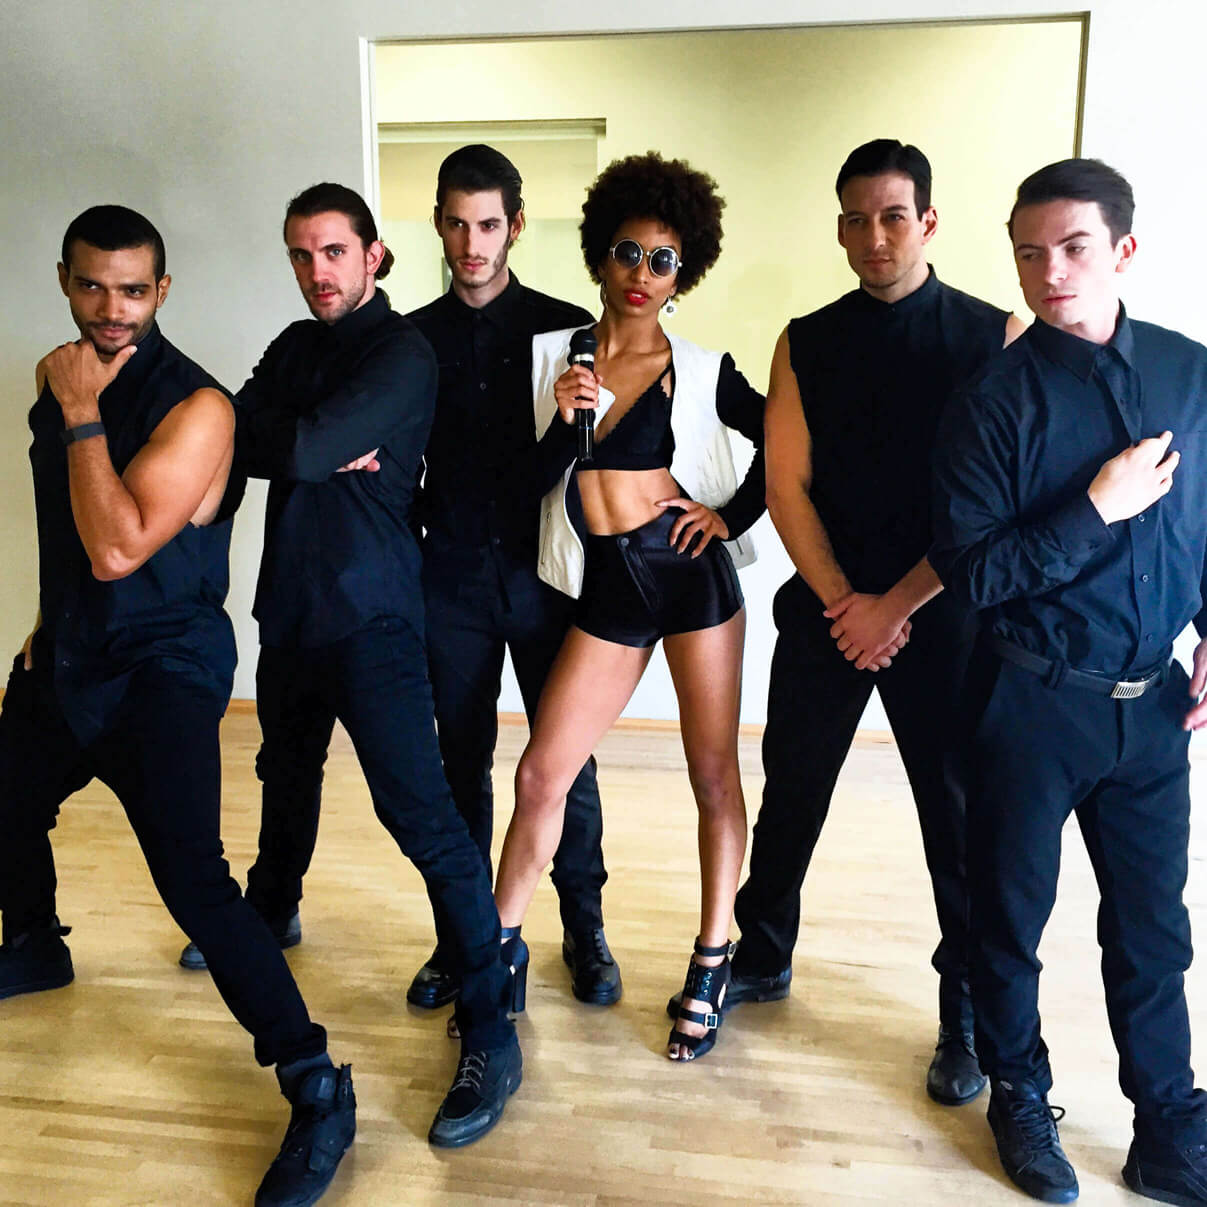 live event performers los angeles professional dancers asher entertainment 115